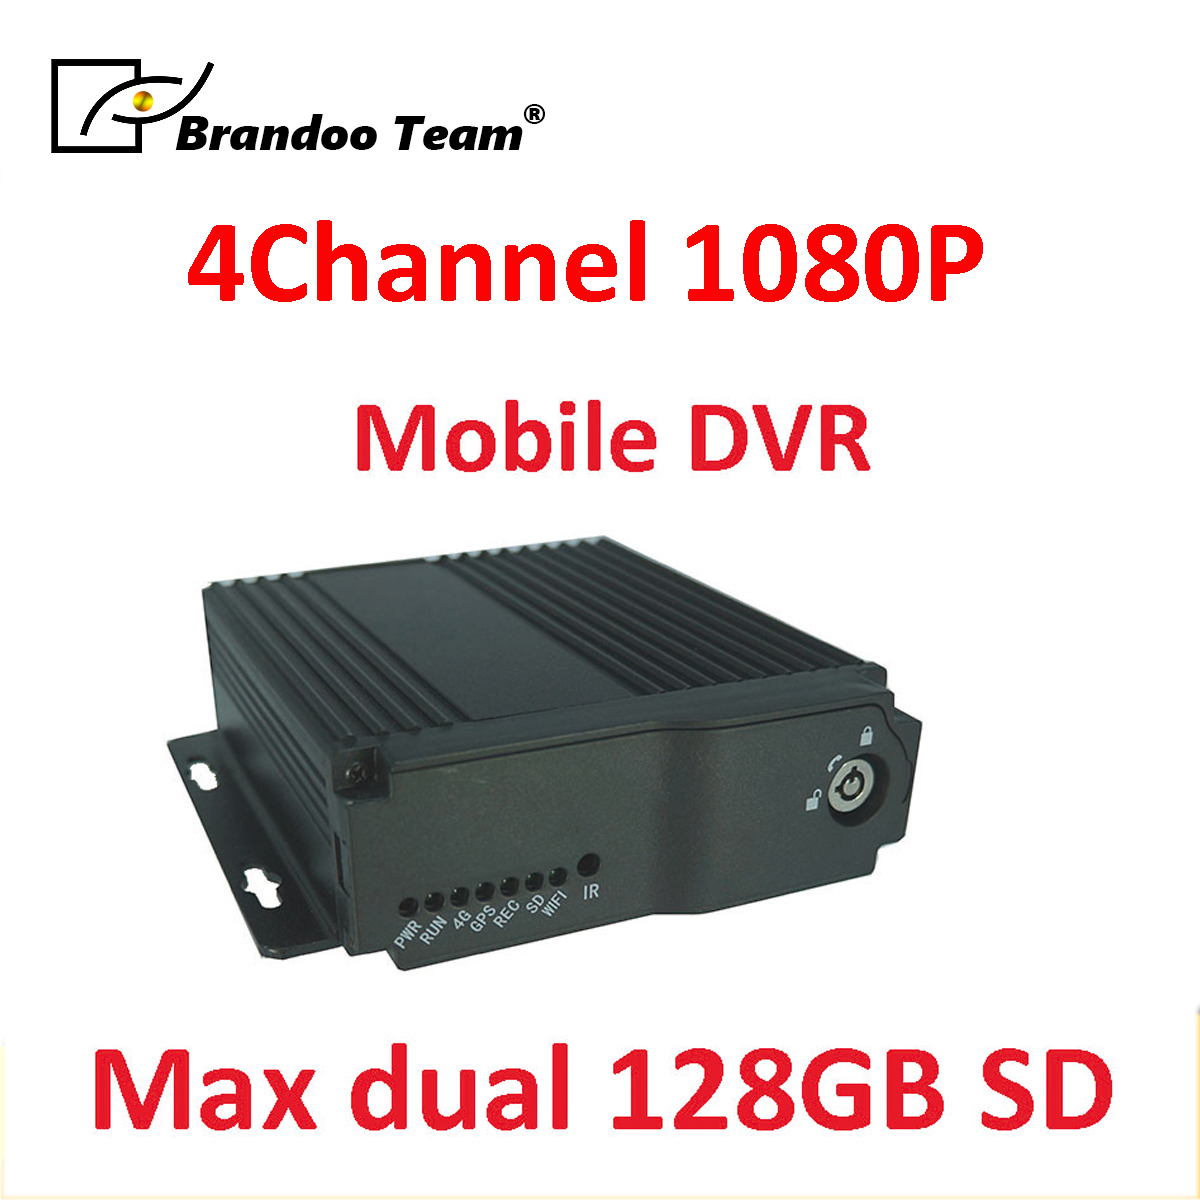 1080P AHD <font><b>SD</b></font> HD Car DVR 4CH Realtime Video Recorder for Bus Truck Mobile 4CH Car DVR <font><b>SD</b></font> MDVR Dash Camera 128 <font><b>gb</b></font> image